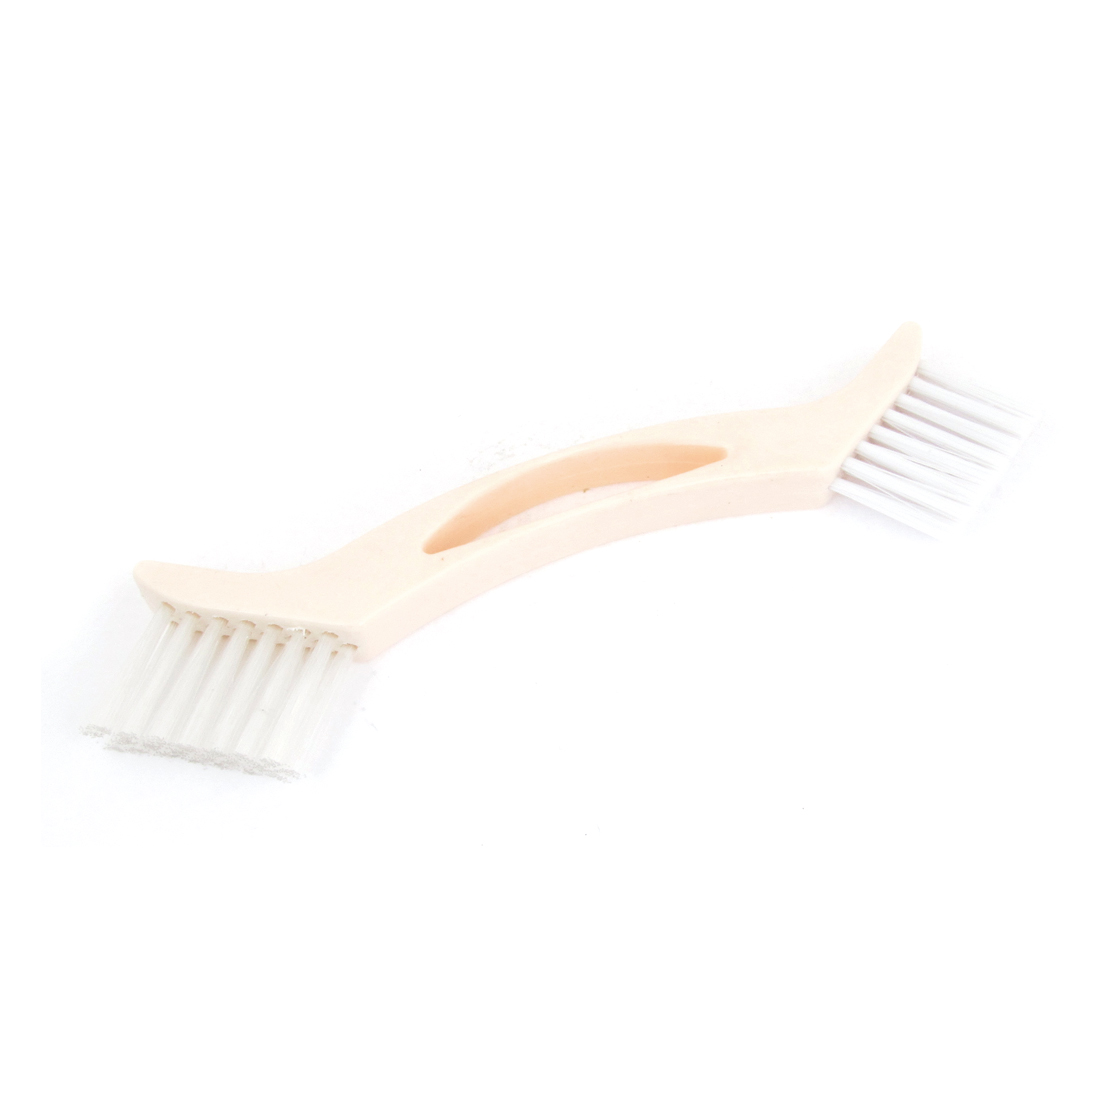 Double Ended Nylon Bristles Plastic Handle Cleaning Brush 23cm Length